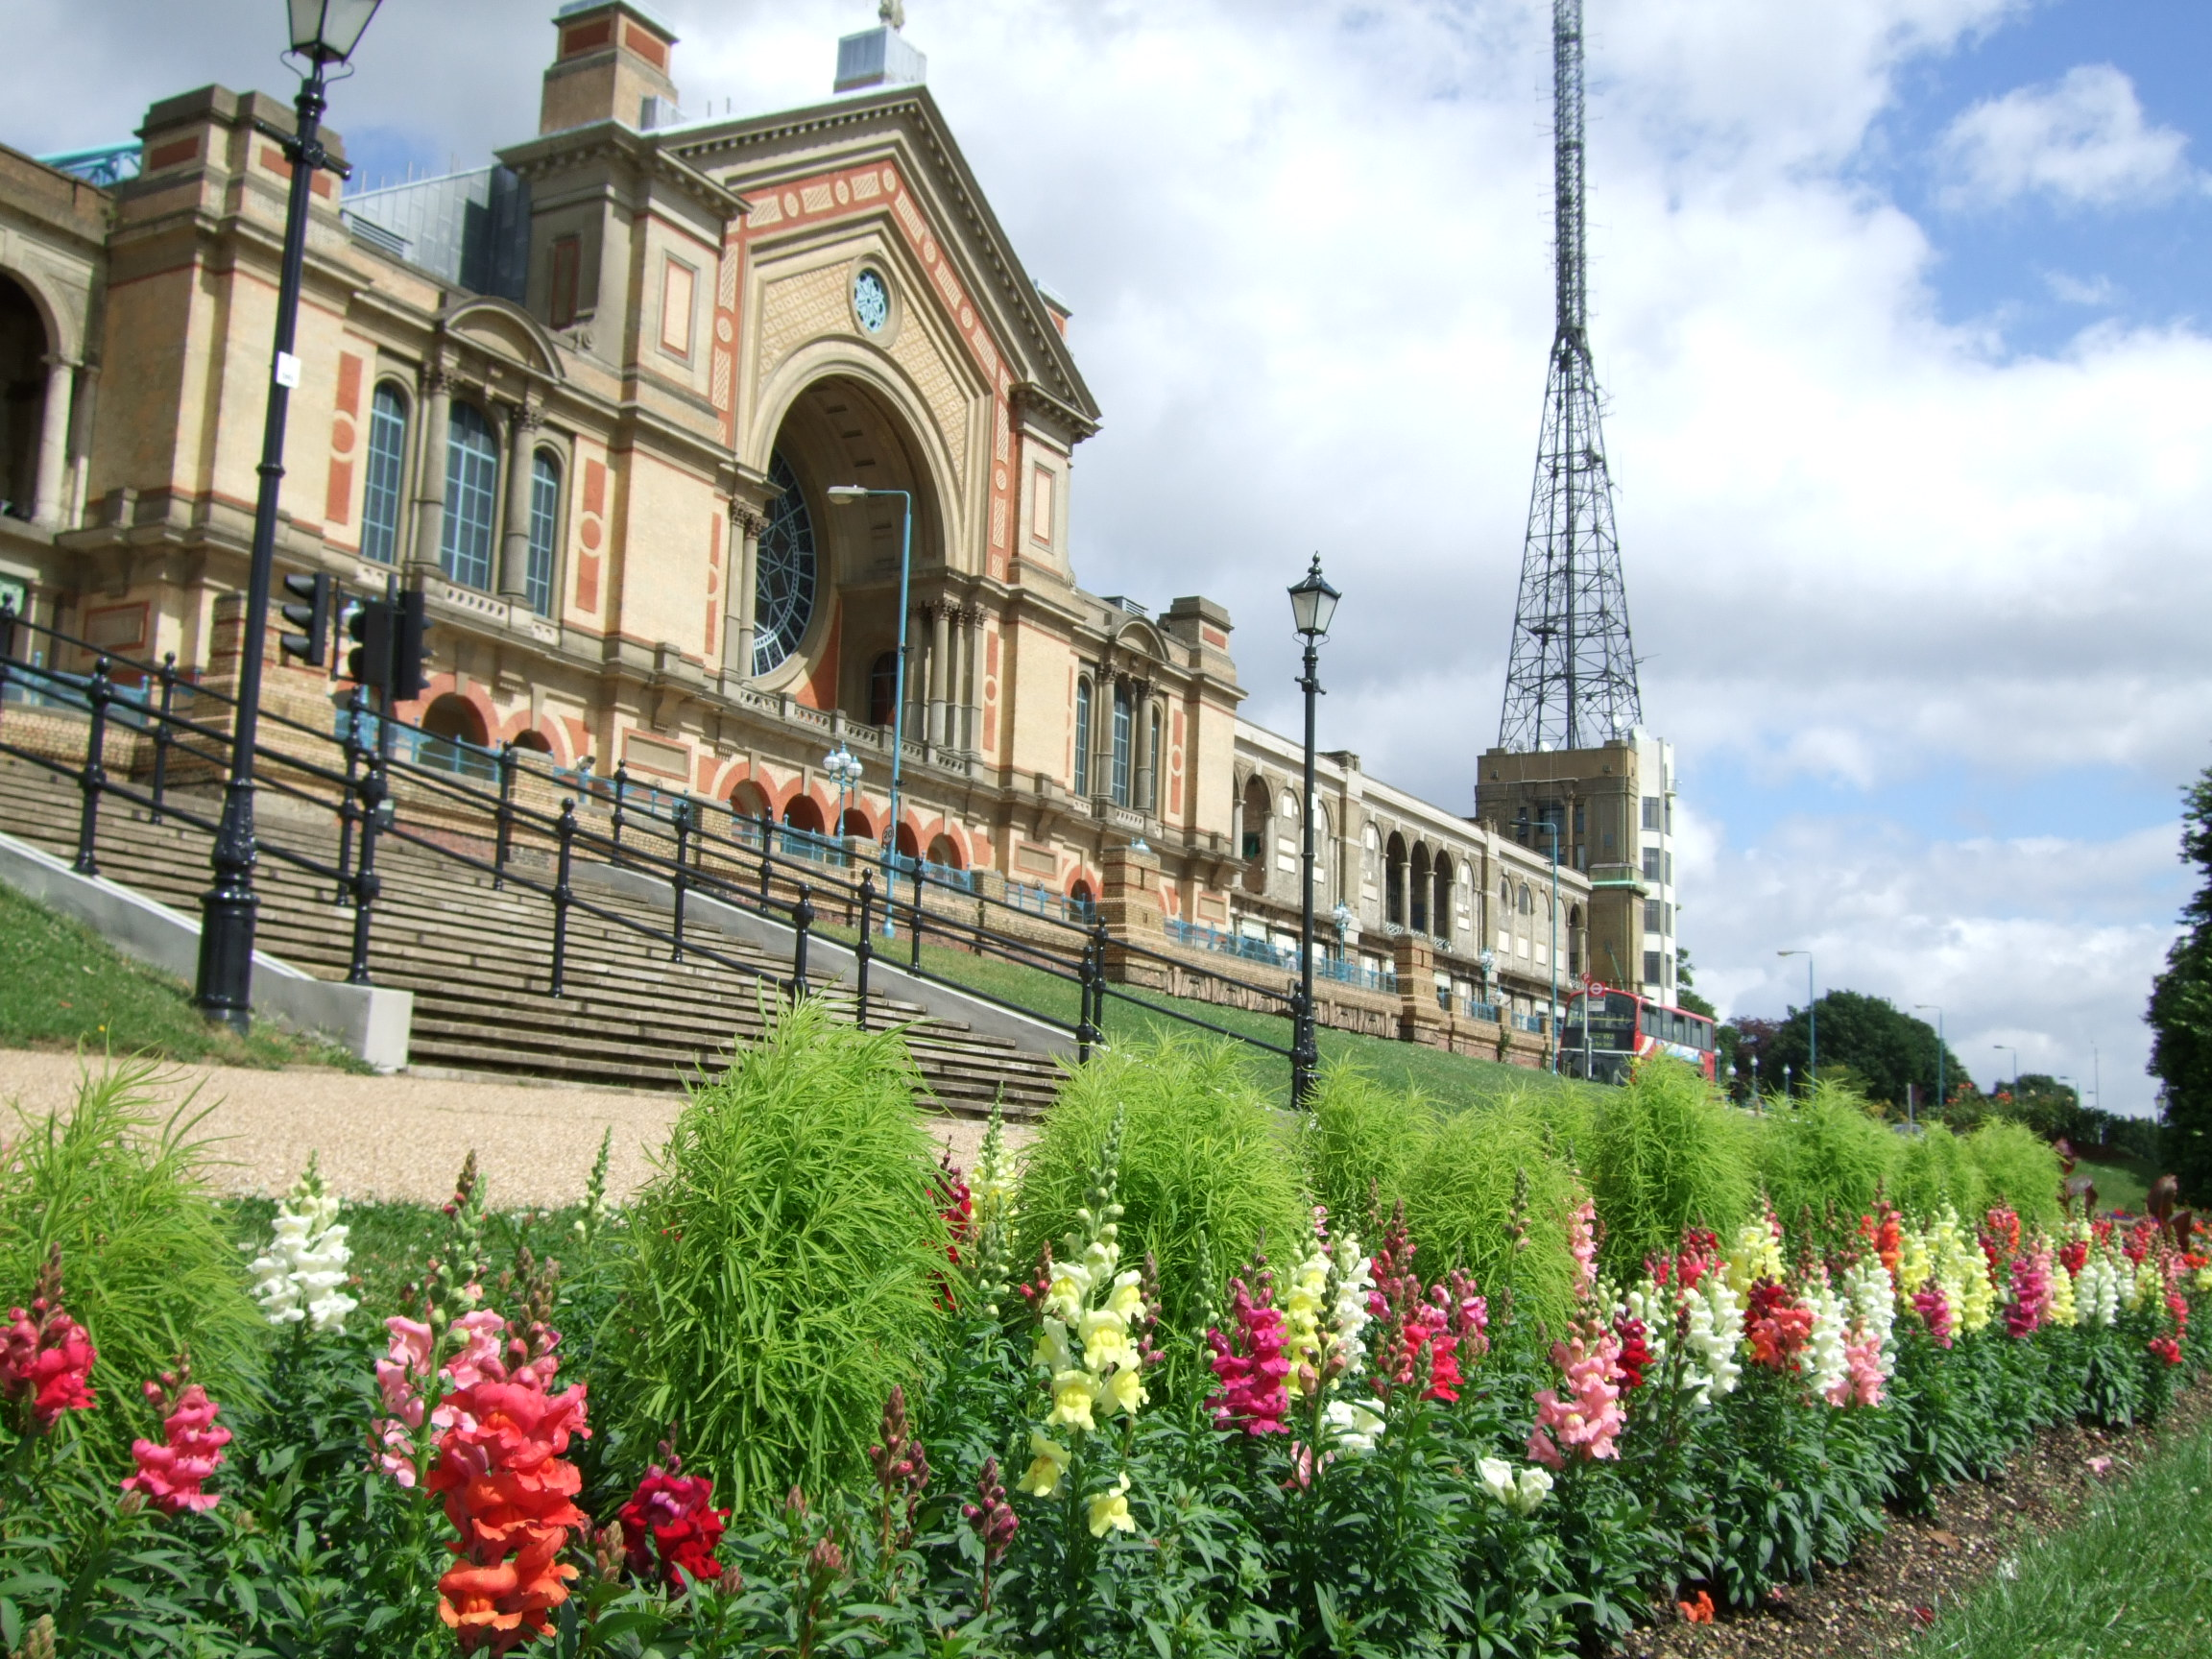 Chief exec talks about future of Ally Pally